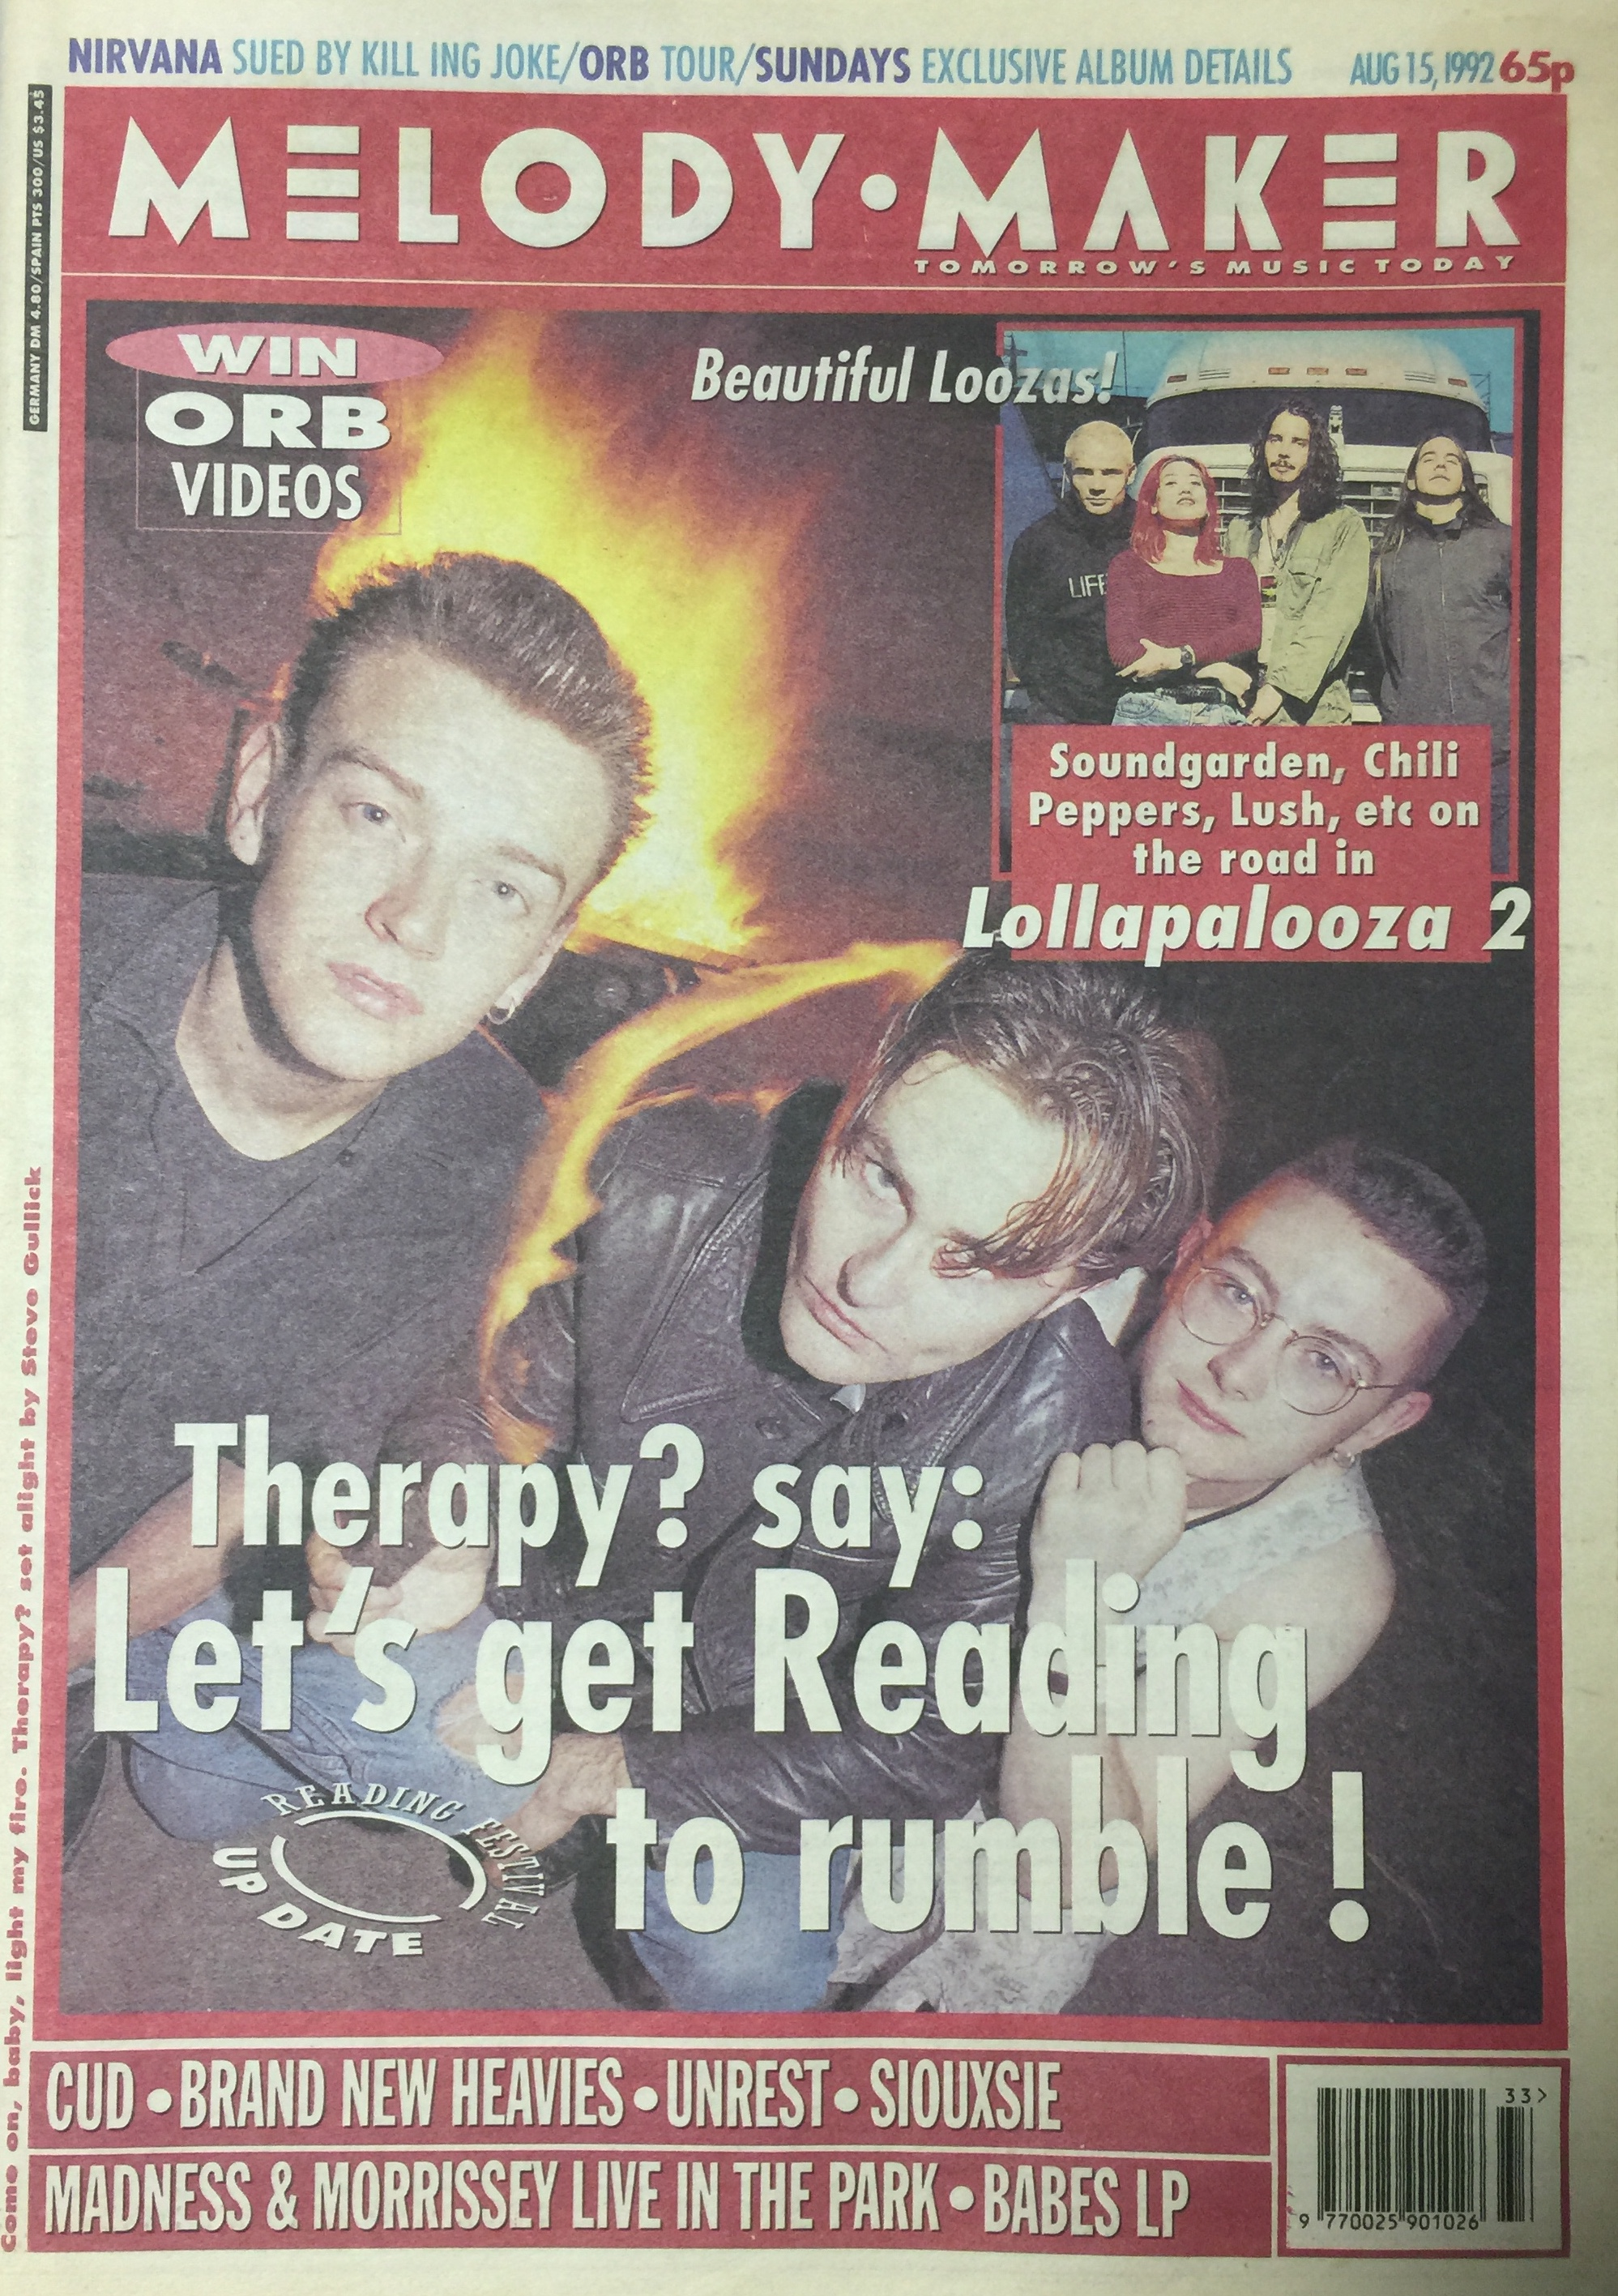 Melody Maker Aug 15, 1992